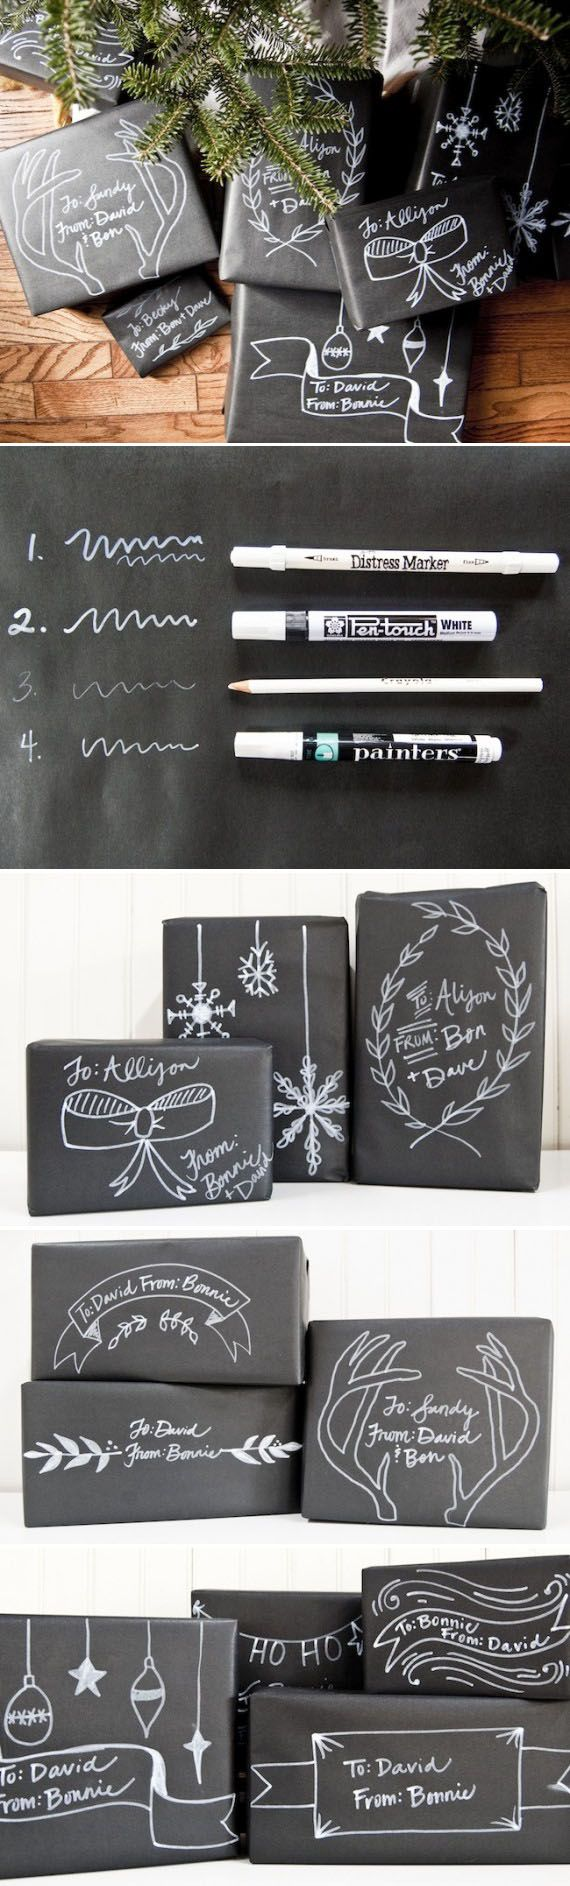 DIY Christmas Chalkboard Gift Packaging. See Elf The Musical live on stage at the Sacramento Community Center Theater Nov. 6-15, 2015. TICKETS: http://www.californiamusicaltheatre.com/